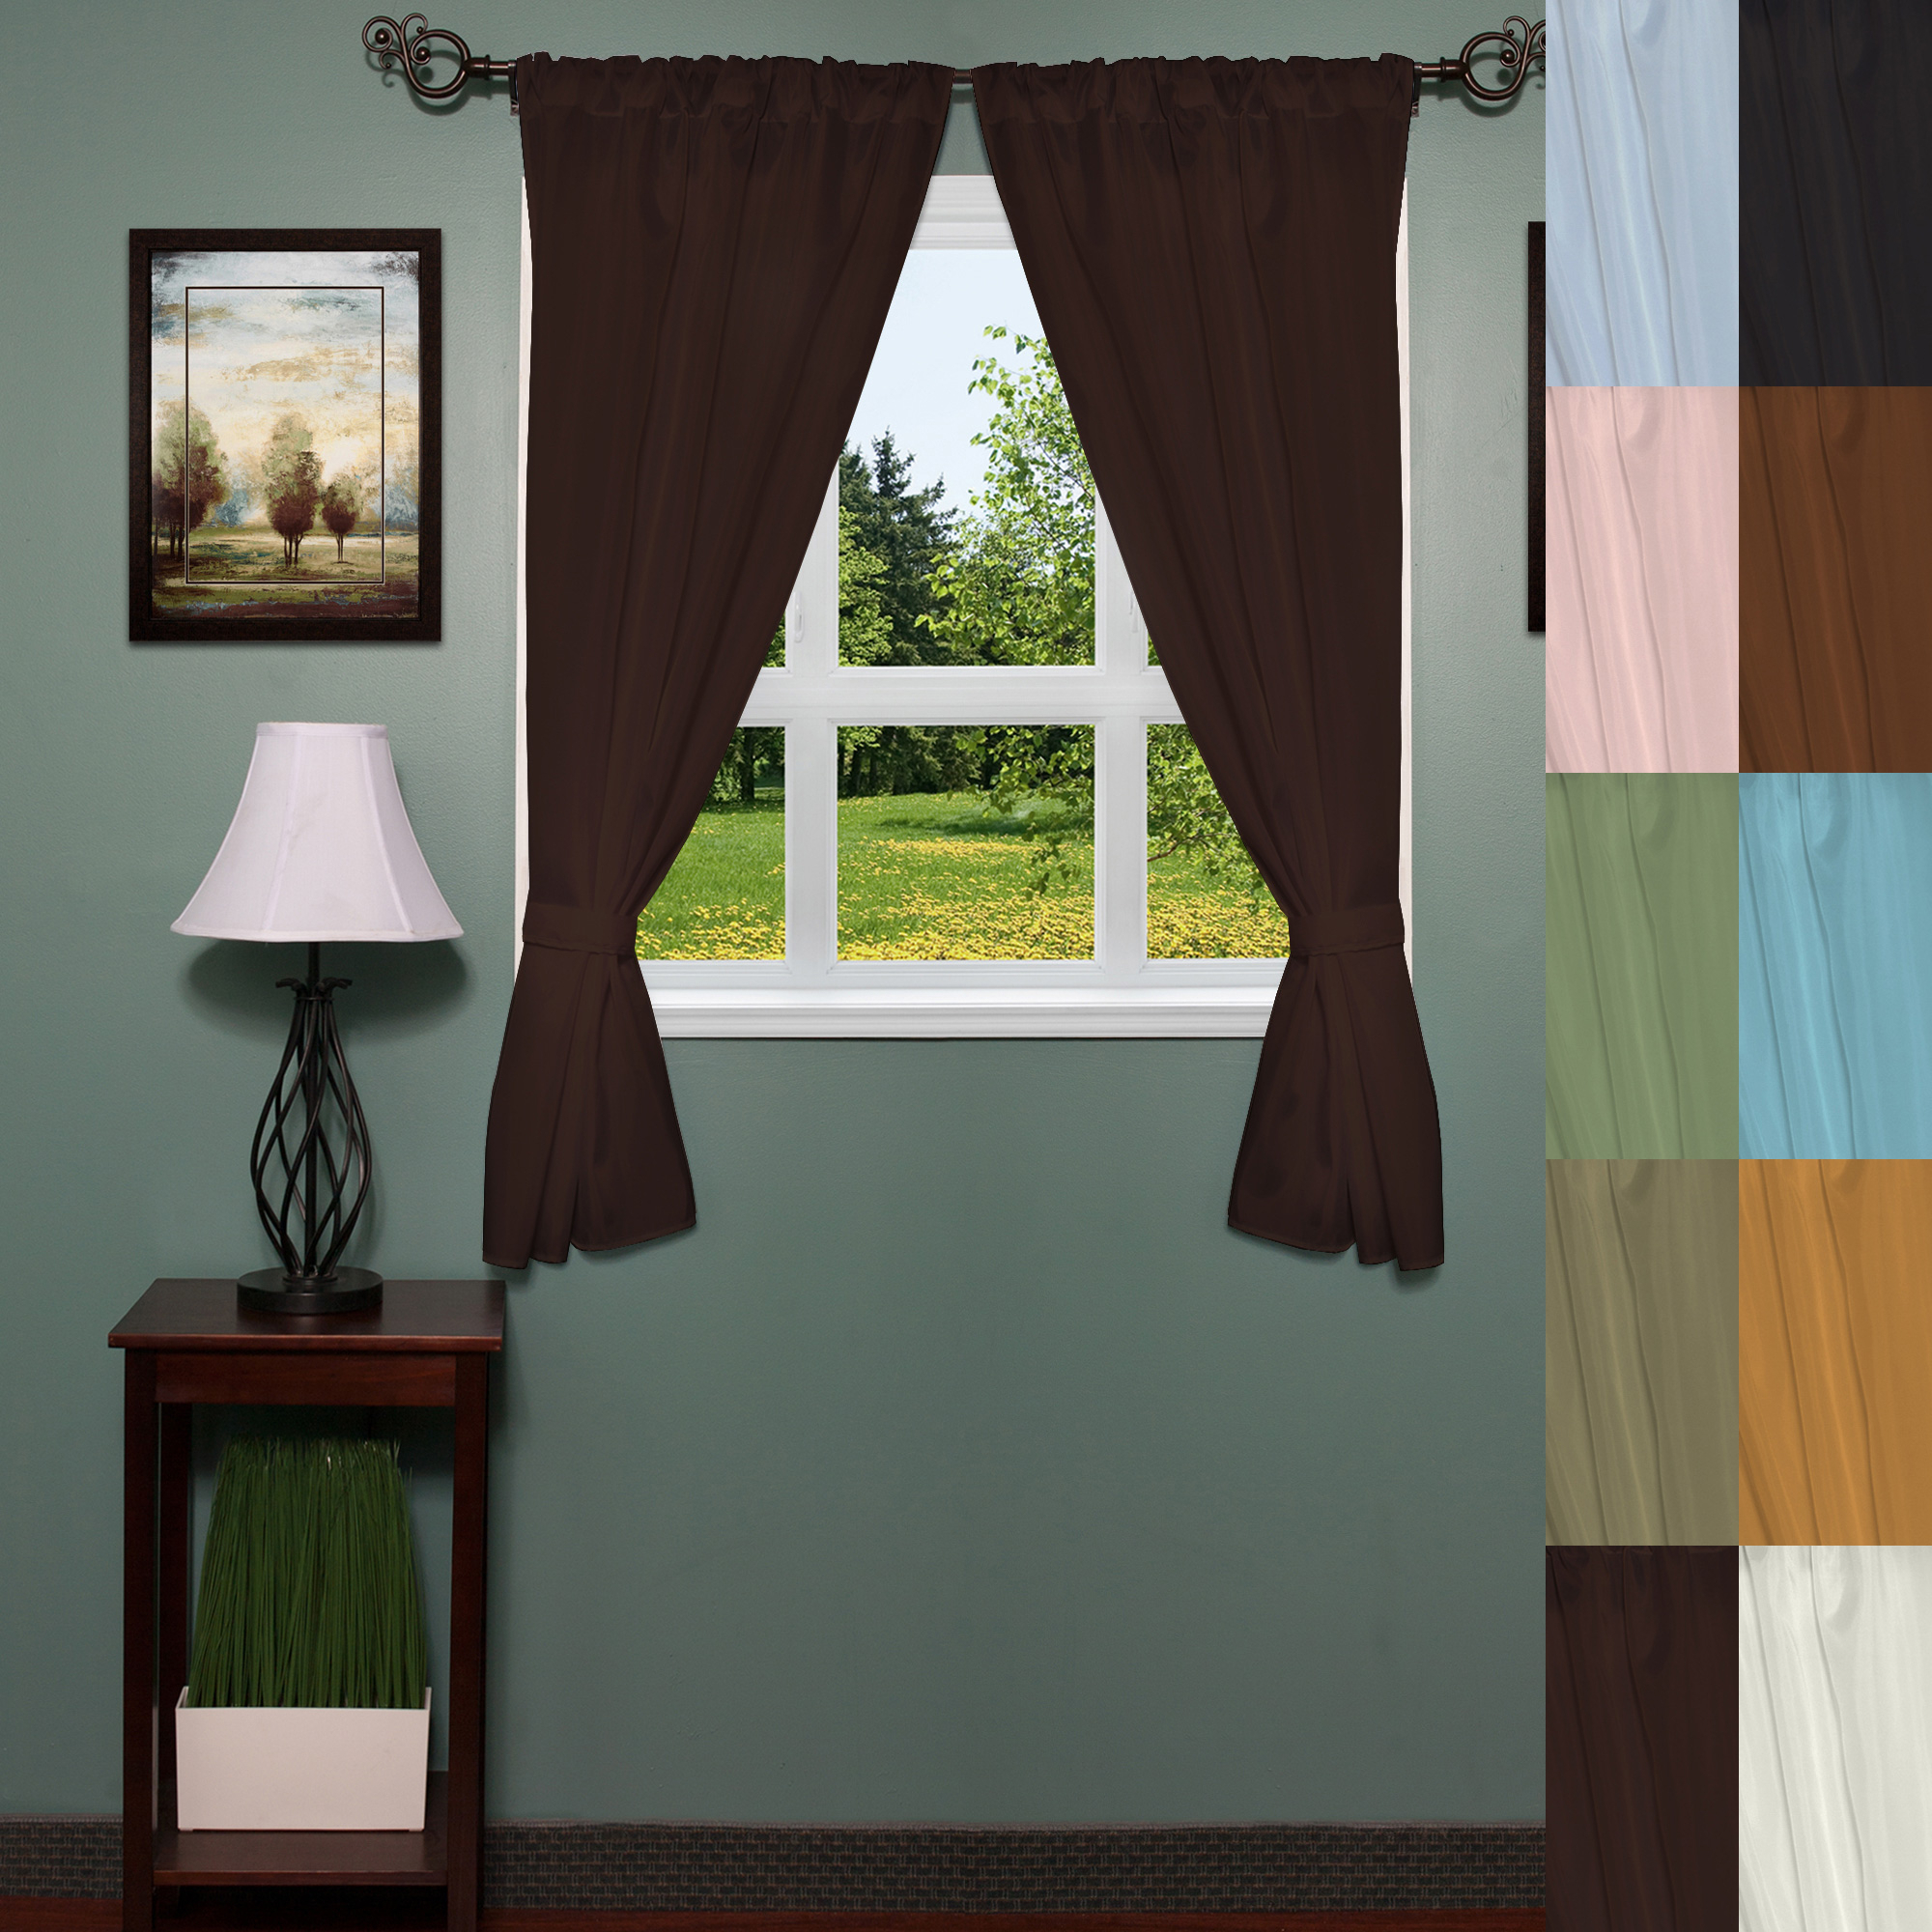 """Classic Hotel Quality Water Resistant Fabric Curtains Set With Tiebacks Throughout Most Current Details About Classic Hotel Quality 36""""w X 54""""l Fabric Bathroom Window  Curtain Set W/tiebacks (View 5 of 20)"""